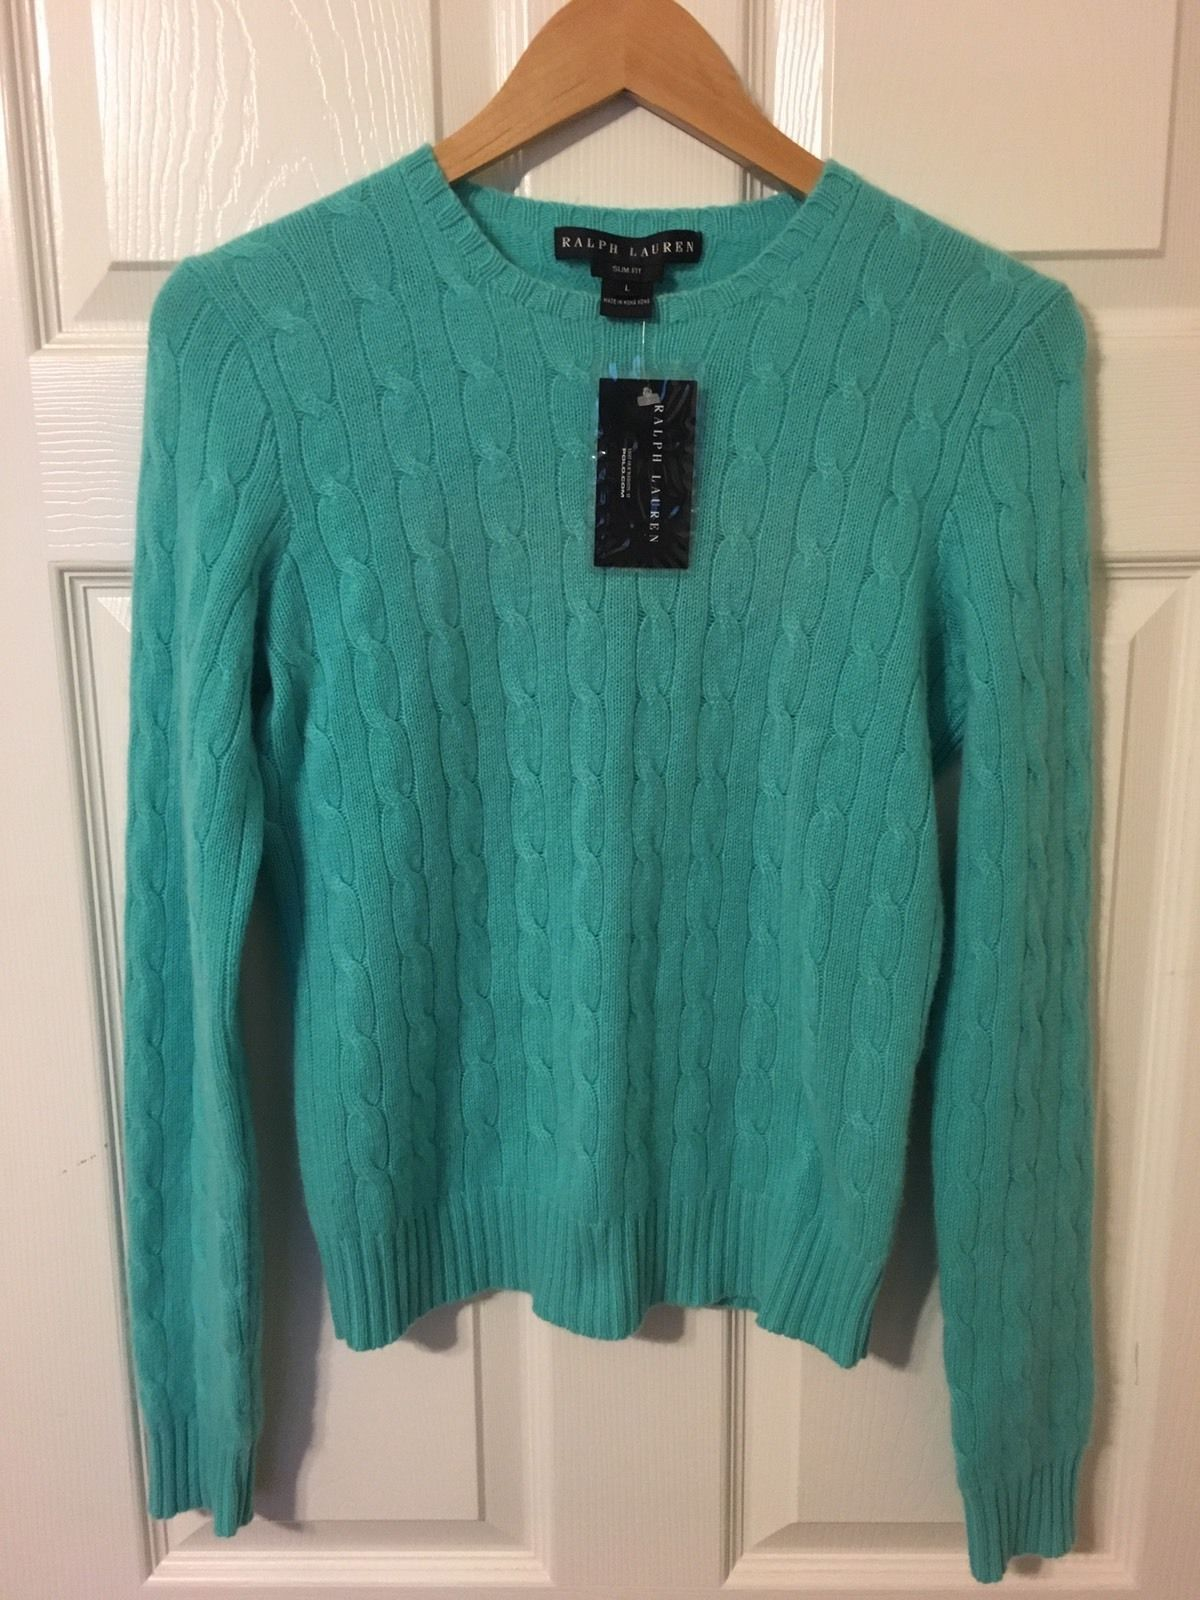 NWT Ralph Lauren Black Label Cable-Knit Turquoise Blue Cashmere ...